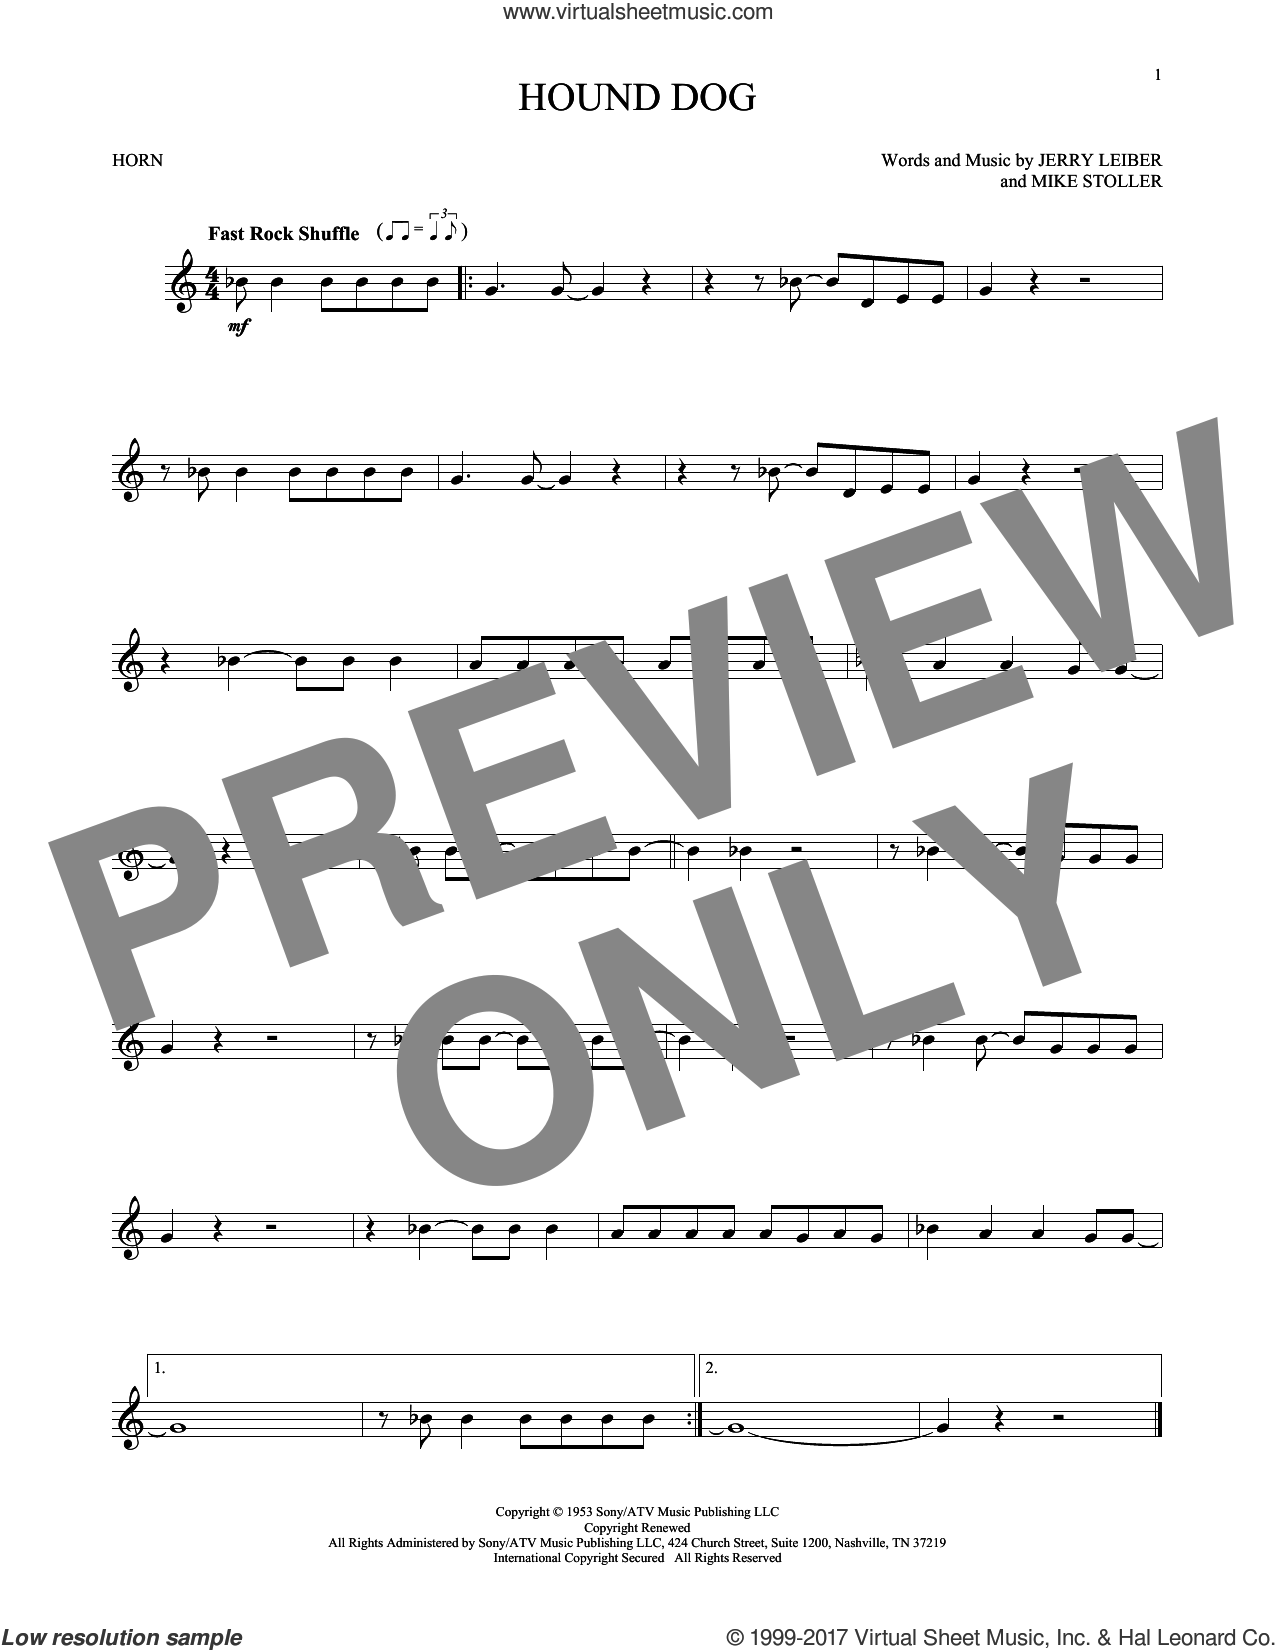 Hound Dog sheet music for horn solo by Elvis Presley, Jerry Leiber and Mike Stoller, intermediate skill level